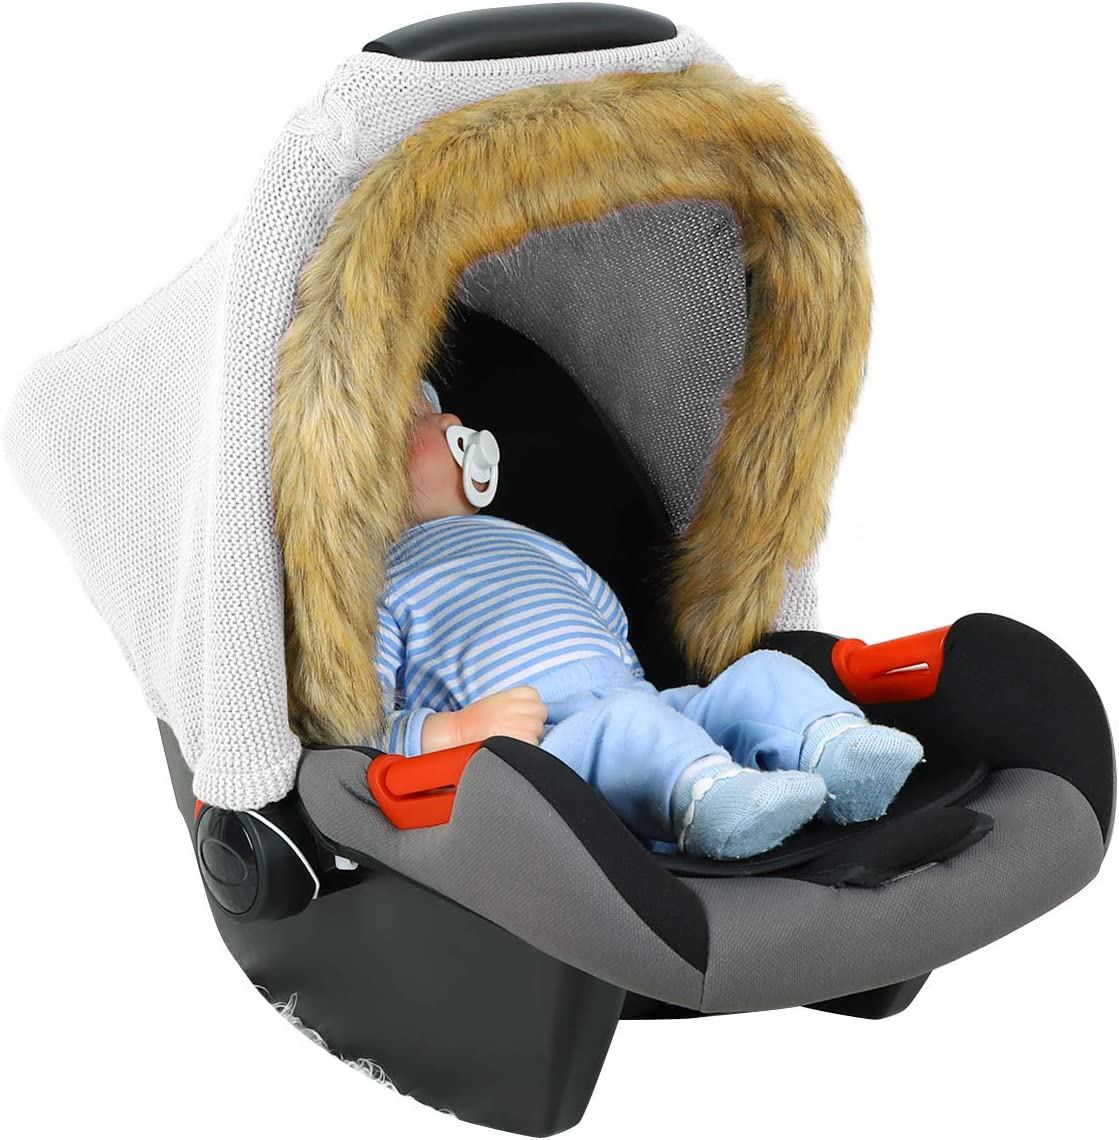 Yinuoday Baby Car Seat Cover with Faux Fur Hem Winter Knitted Stretchy Infant Stroller Cover Carseat Canopy for Boy Girl Indoor Outdoor